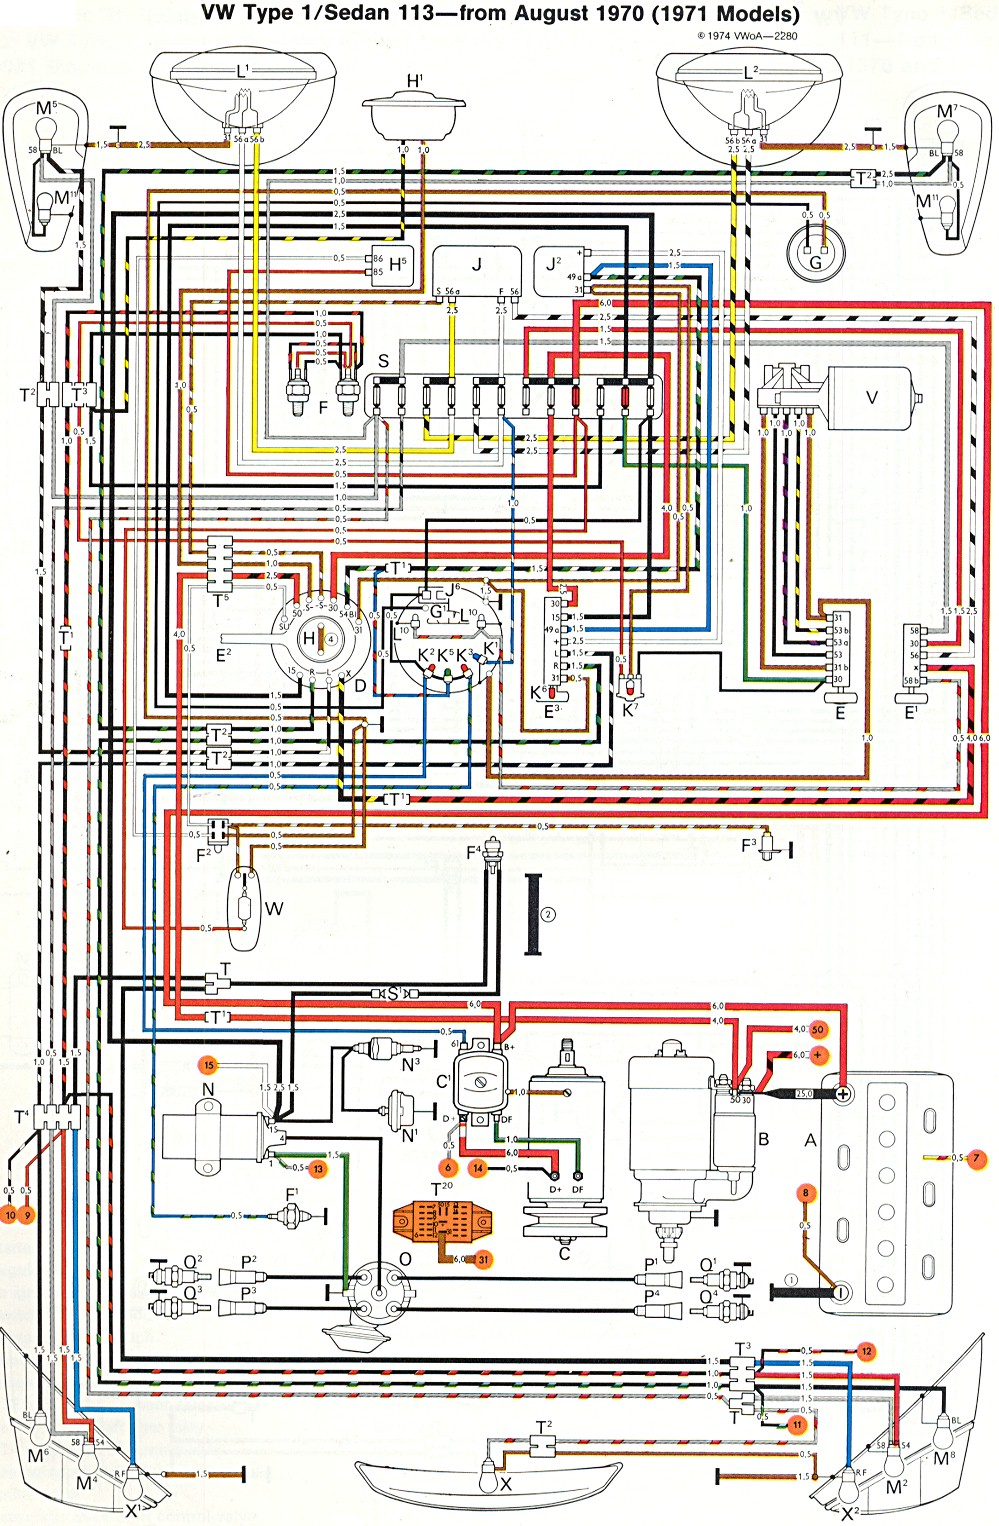 bug_super_71 1971 super beetle wiring diagram thegoldenbug com 1970 vw bug wiring diagram at crackthecode.co